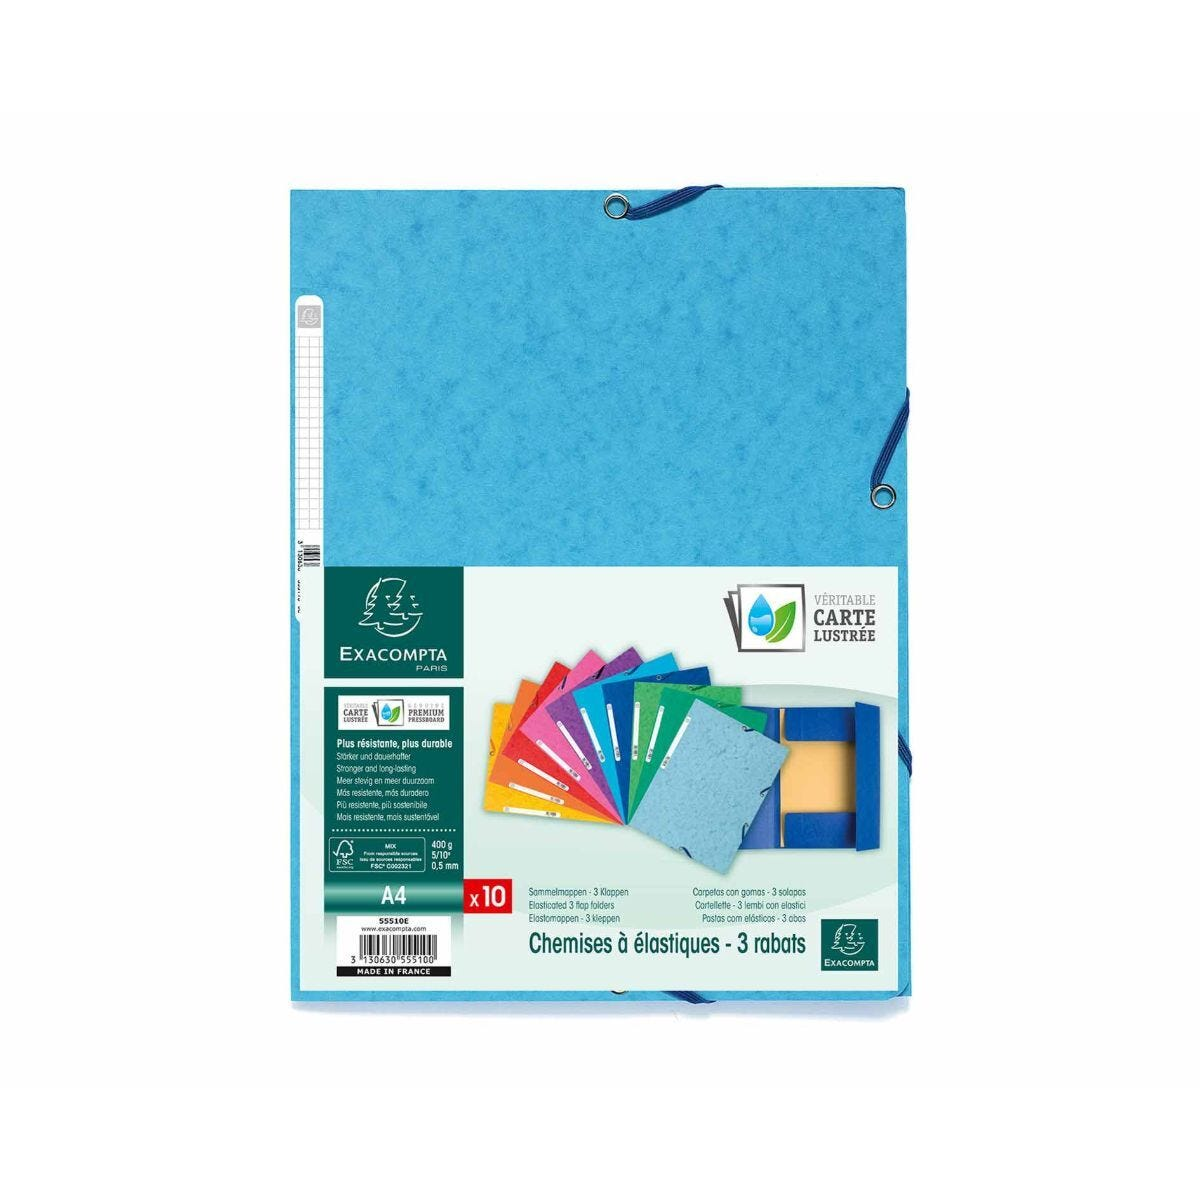 Exacompta Europa 3 Flap Elastic Folder A4 Pack of 50 400gsm 10 Assorted Colours